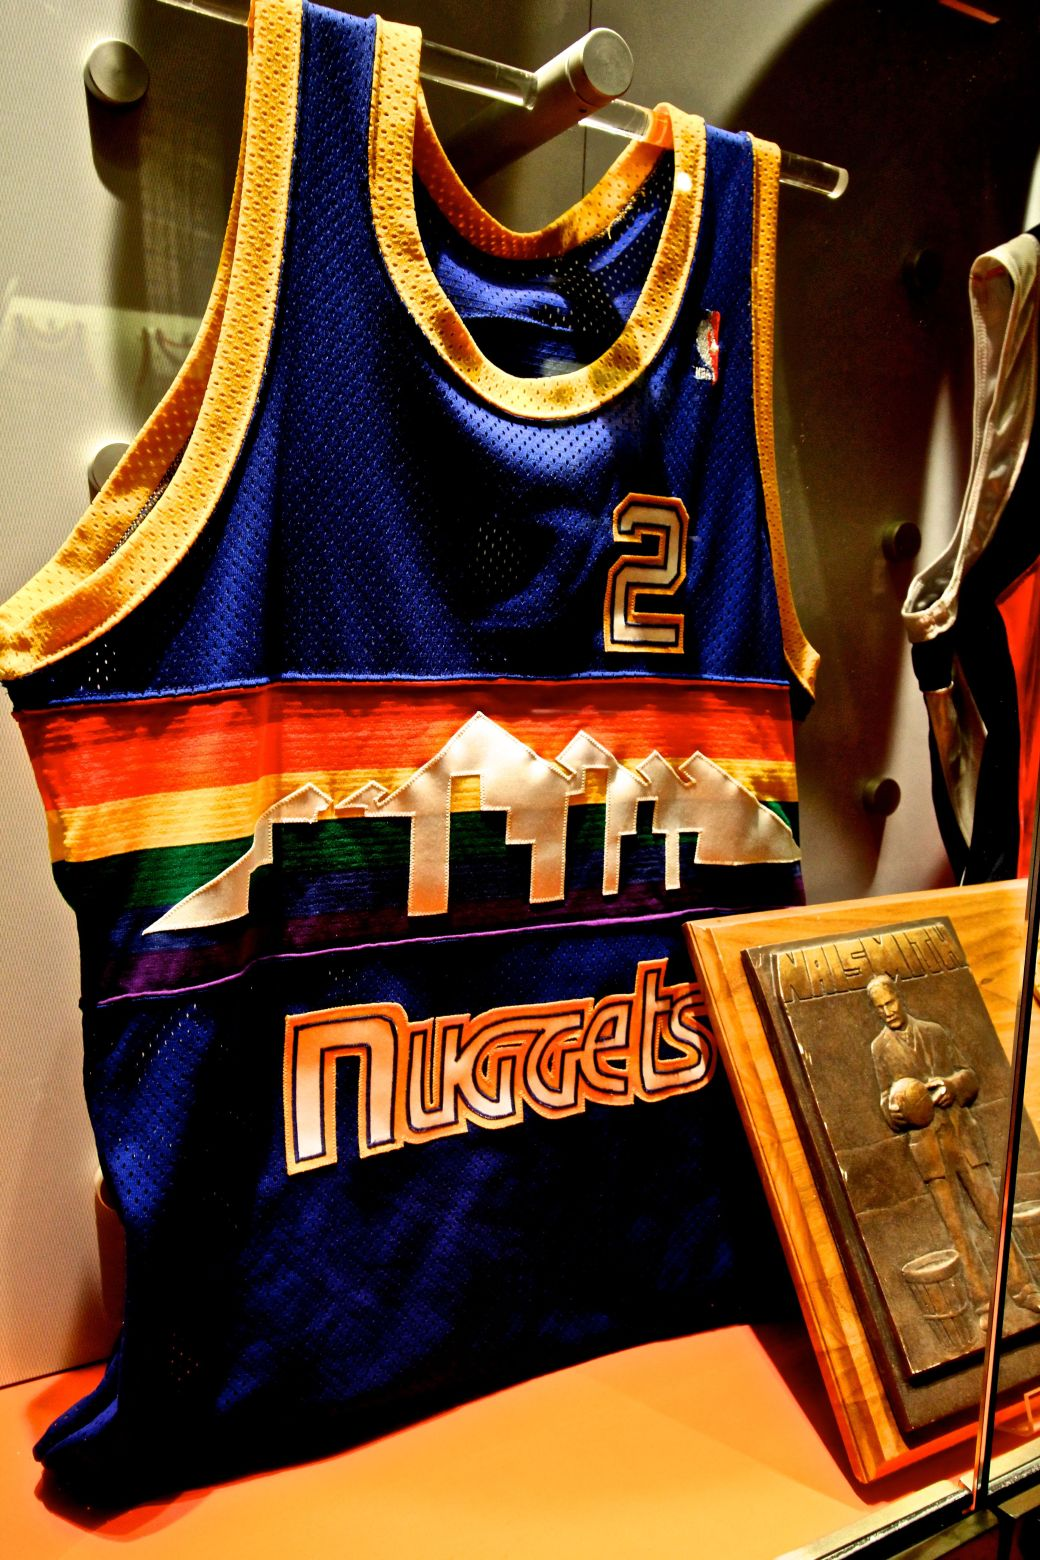 Springfield Naismith Memorial Basketball Hall of Fame nuggets jersey